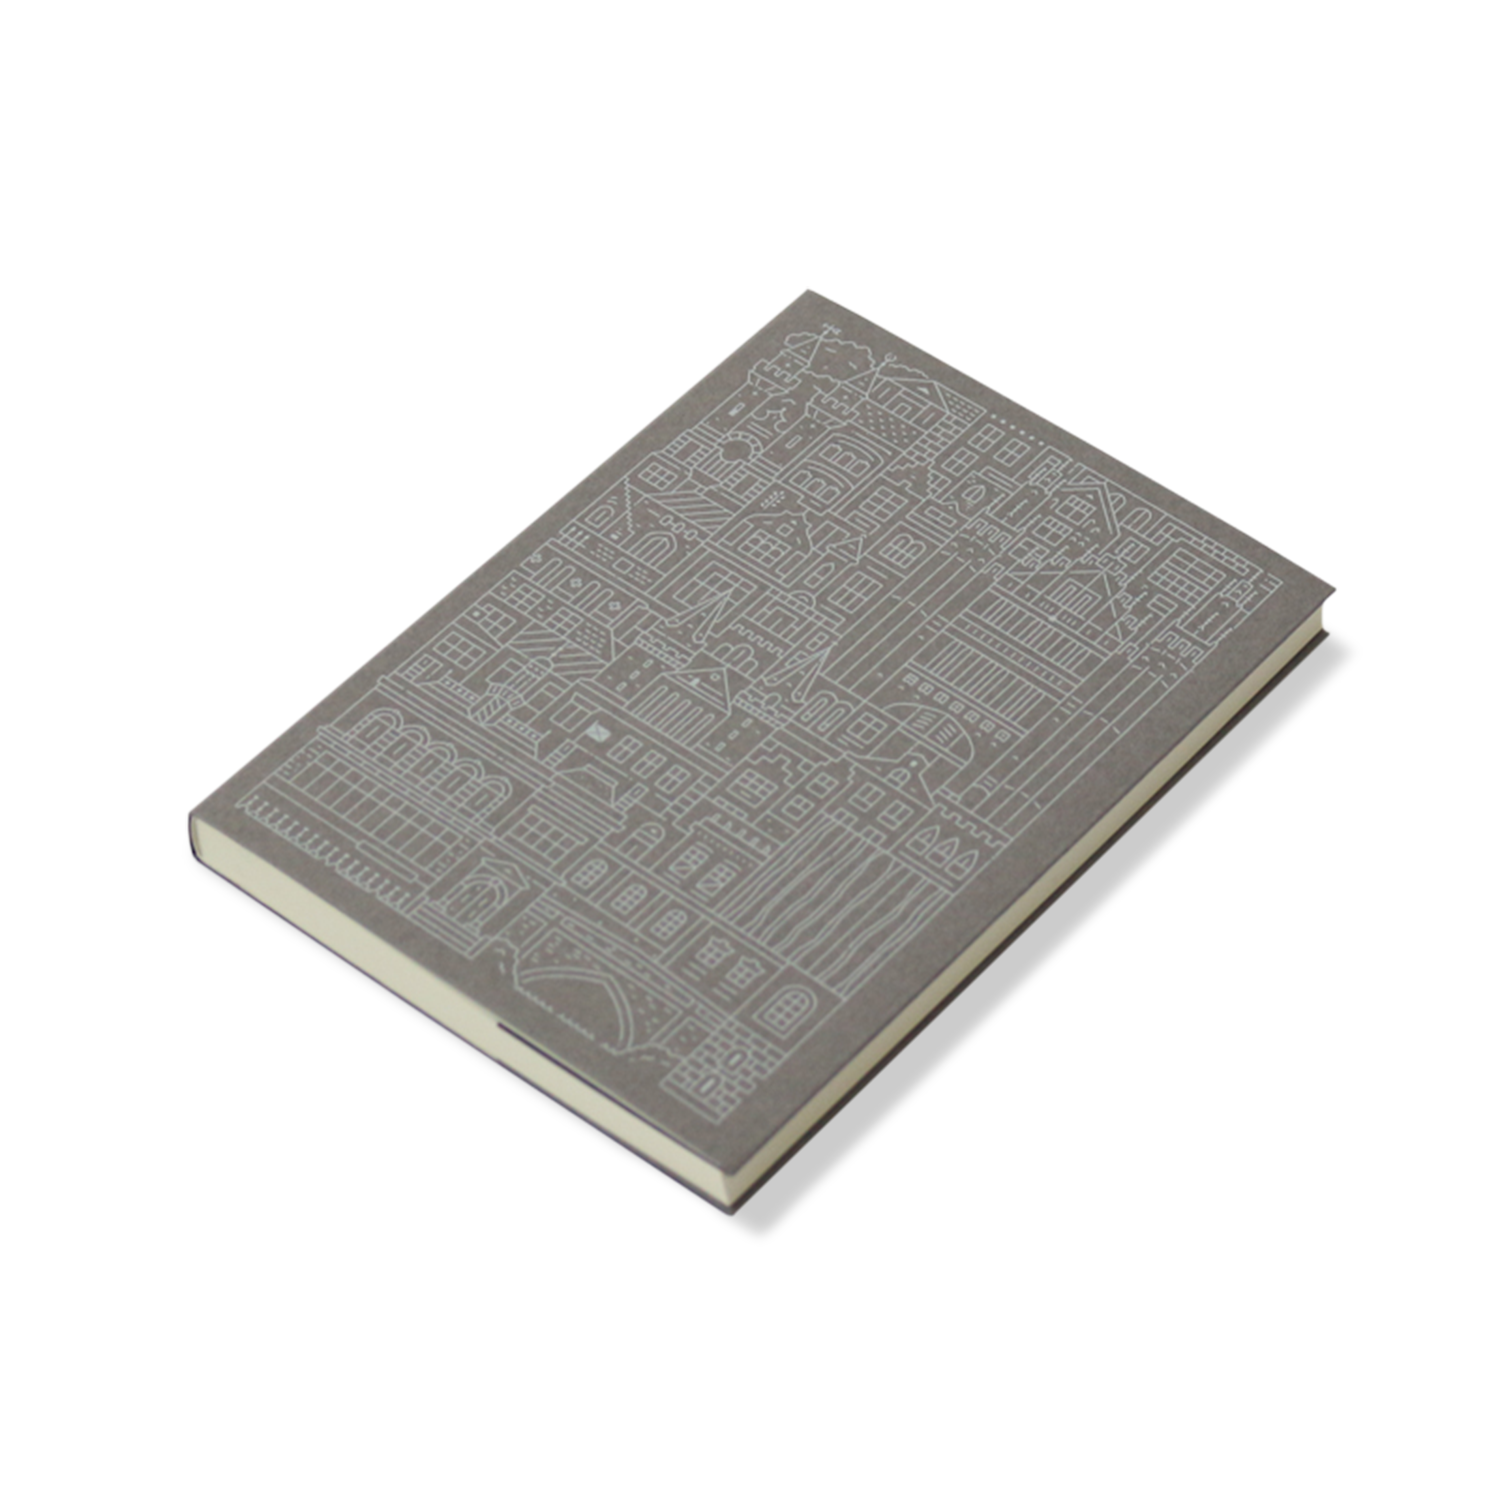 Place in Print The City Works Aberdeen Notebook Exterior